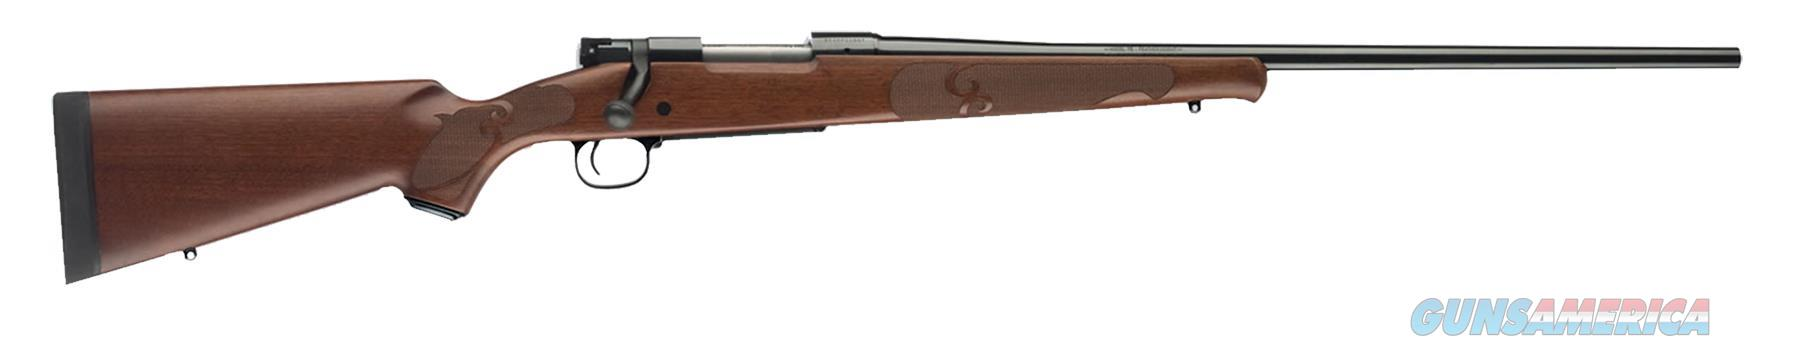 WINCHESTER MOD 70 FWT 2506 535200225  Guns > Rifles > Winchester Rifles - Modern Bolt/Auto/Single > Model 70 > Post-64